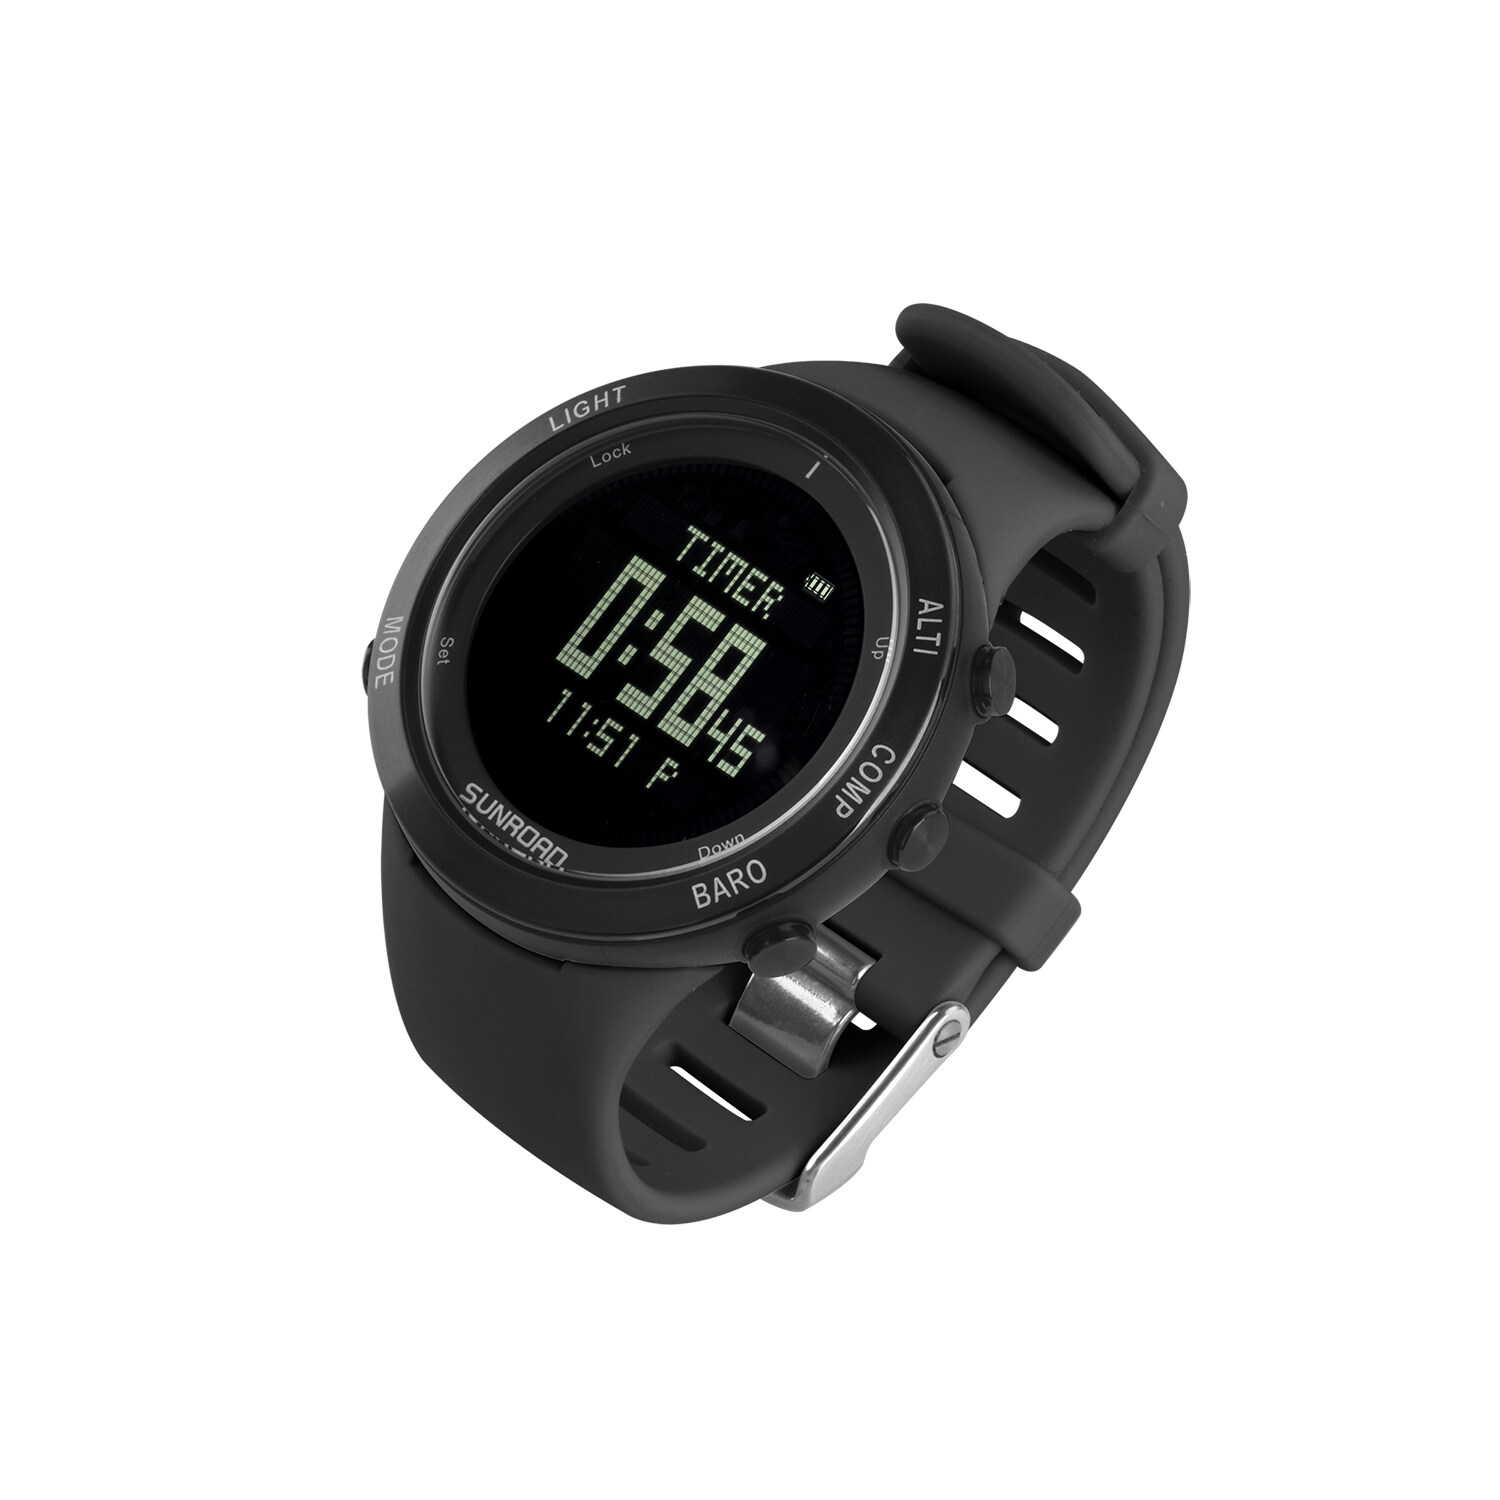 Sunroad heart rate outdoor sports watch with Pedometer, altimeter, climb data, hiking, camping, traveling watch waterproof 7